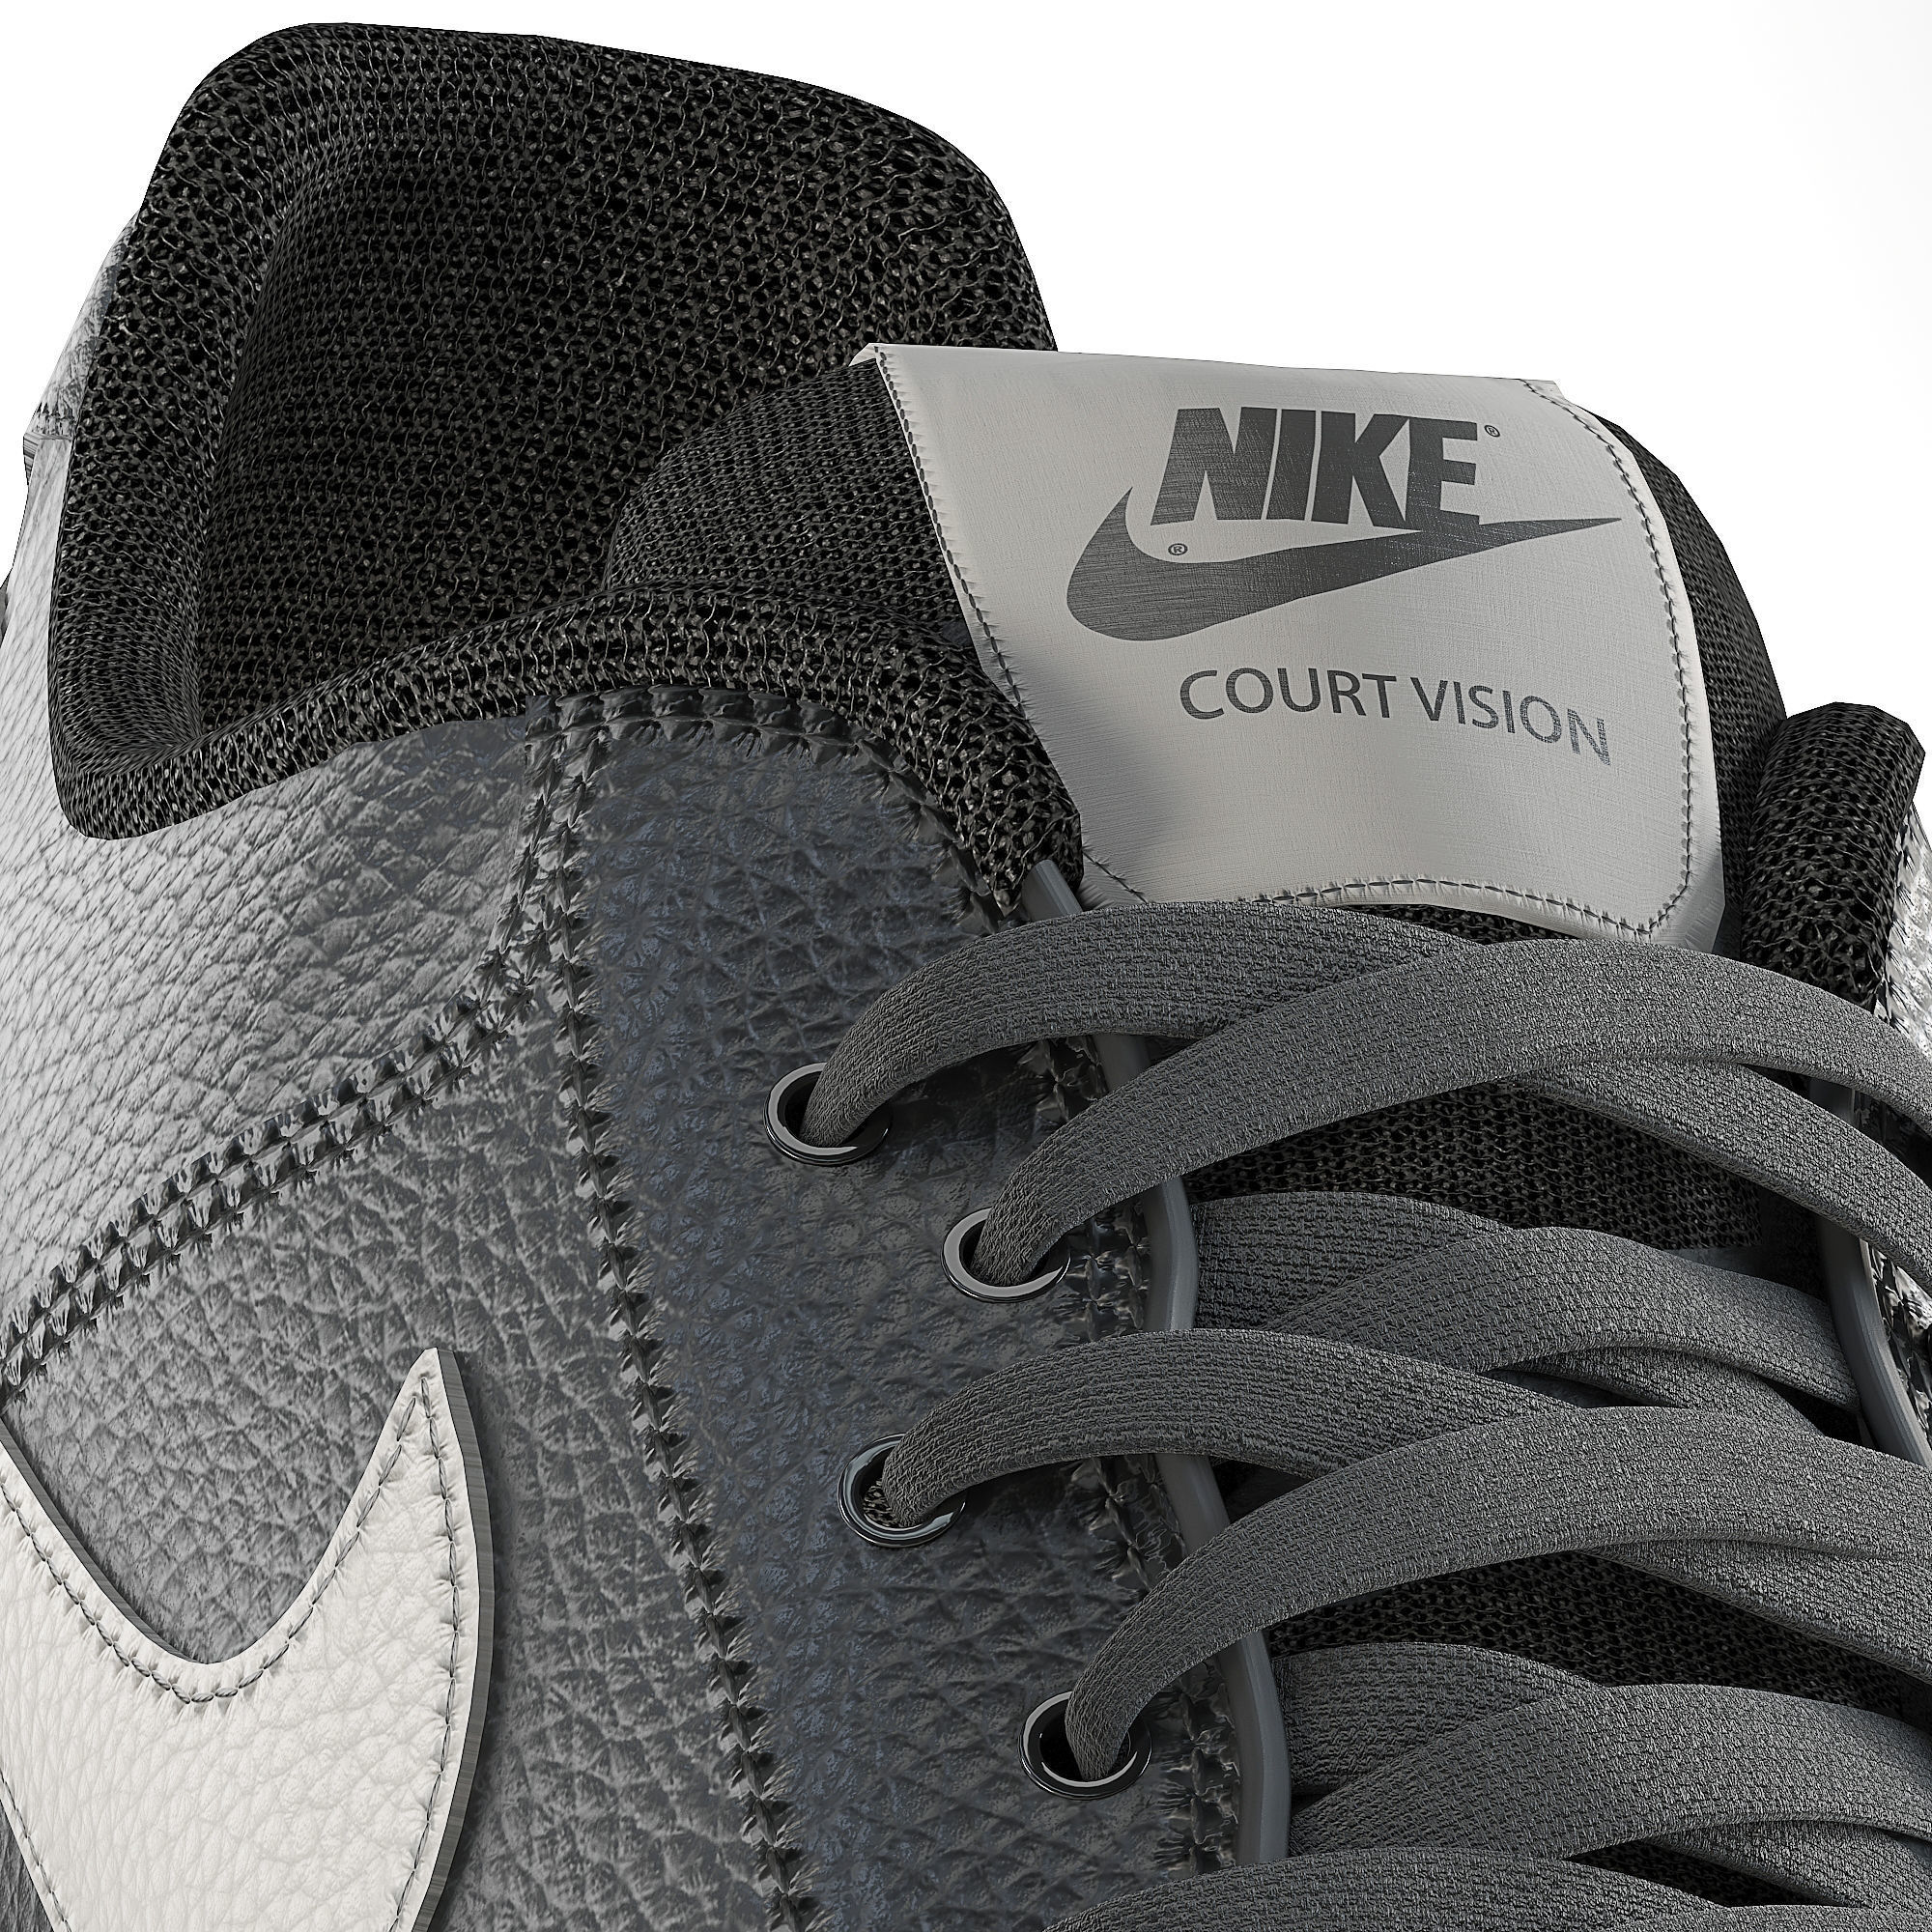 NIKE-COURT-VISION-LOW